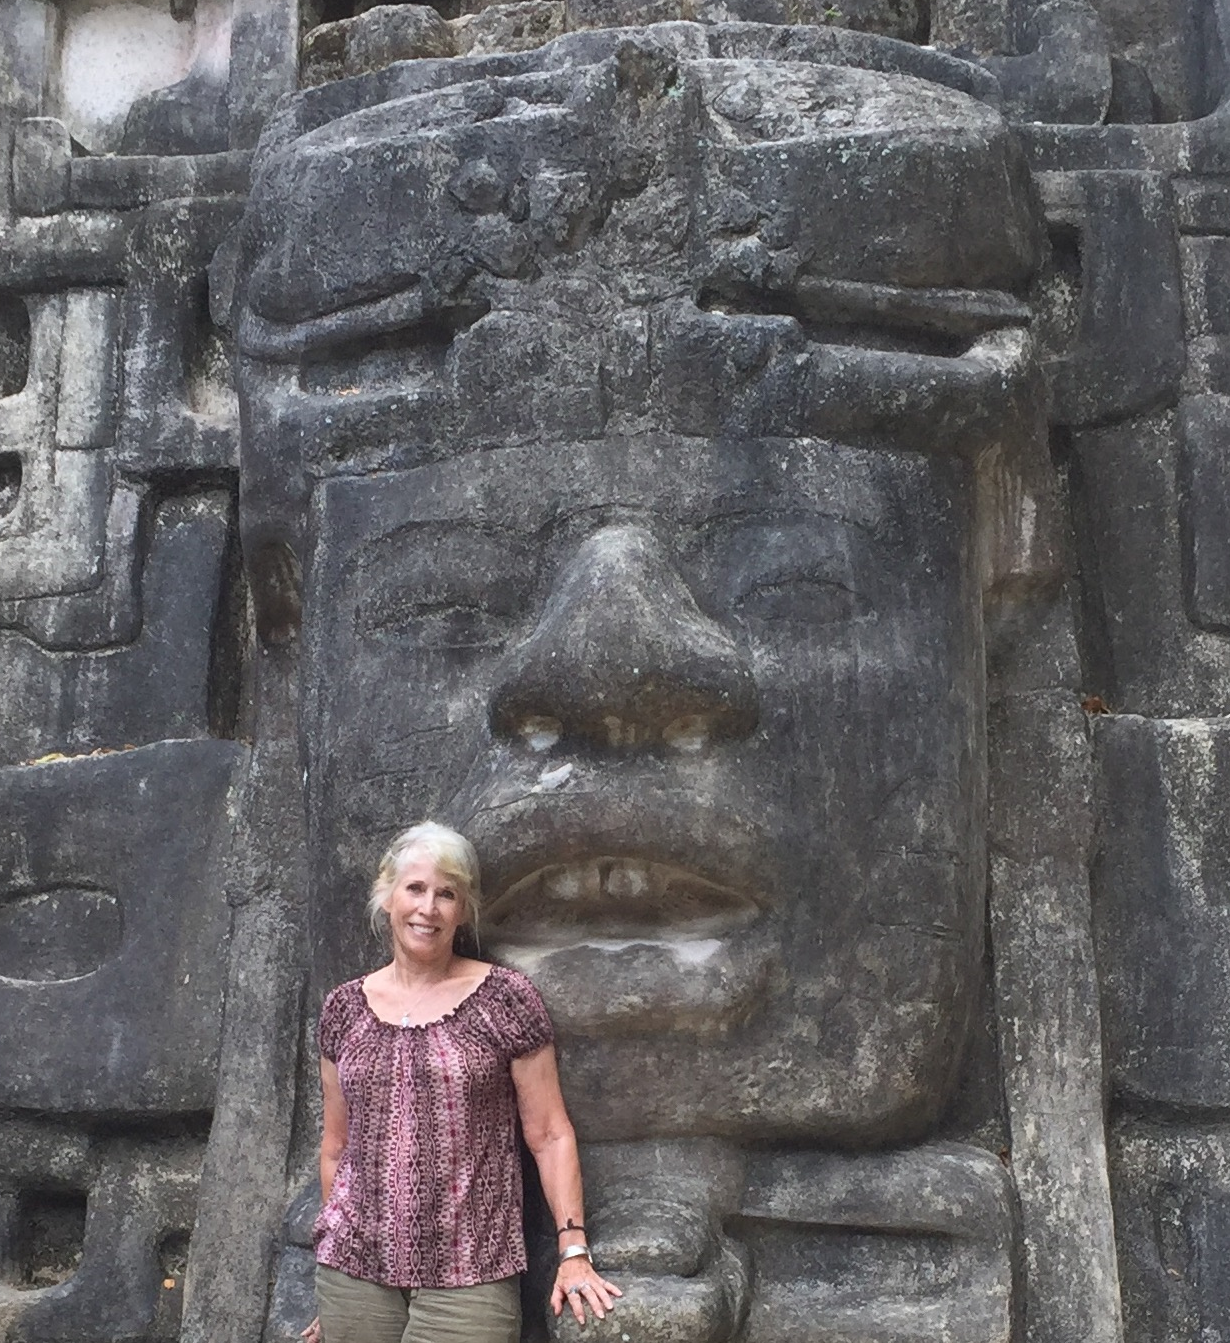 That's me in front of a massive stone carving at Laminai in Belize. Only a small fraction of the buildings of this site have been excavated.